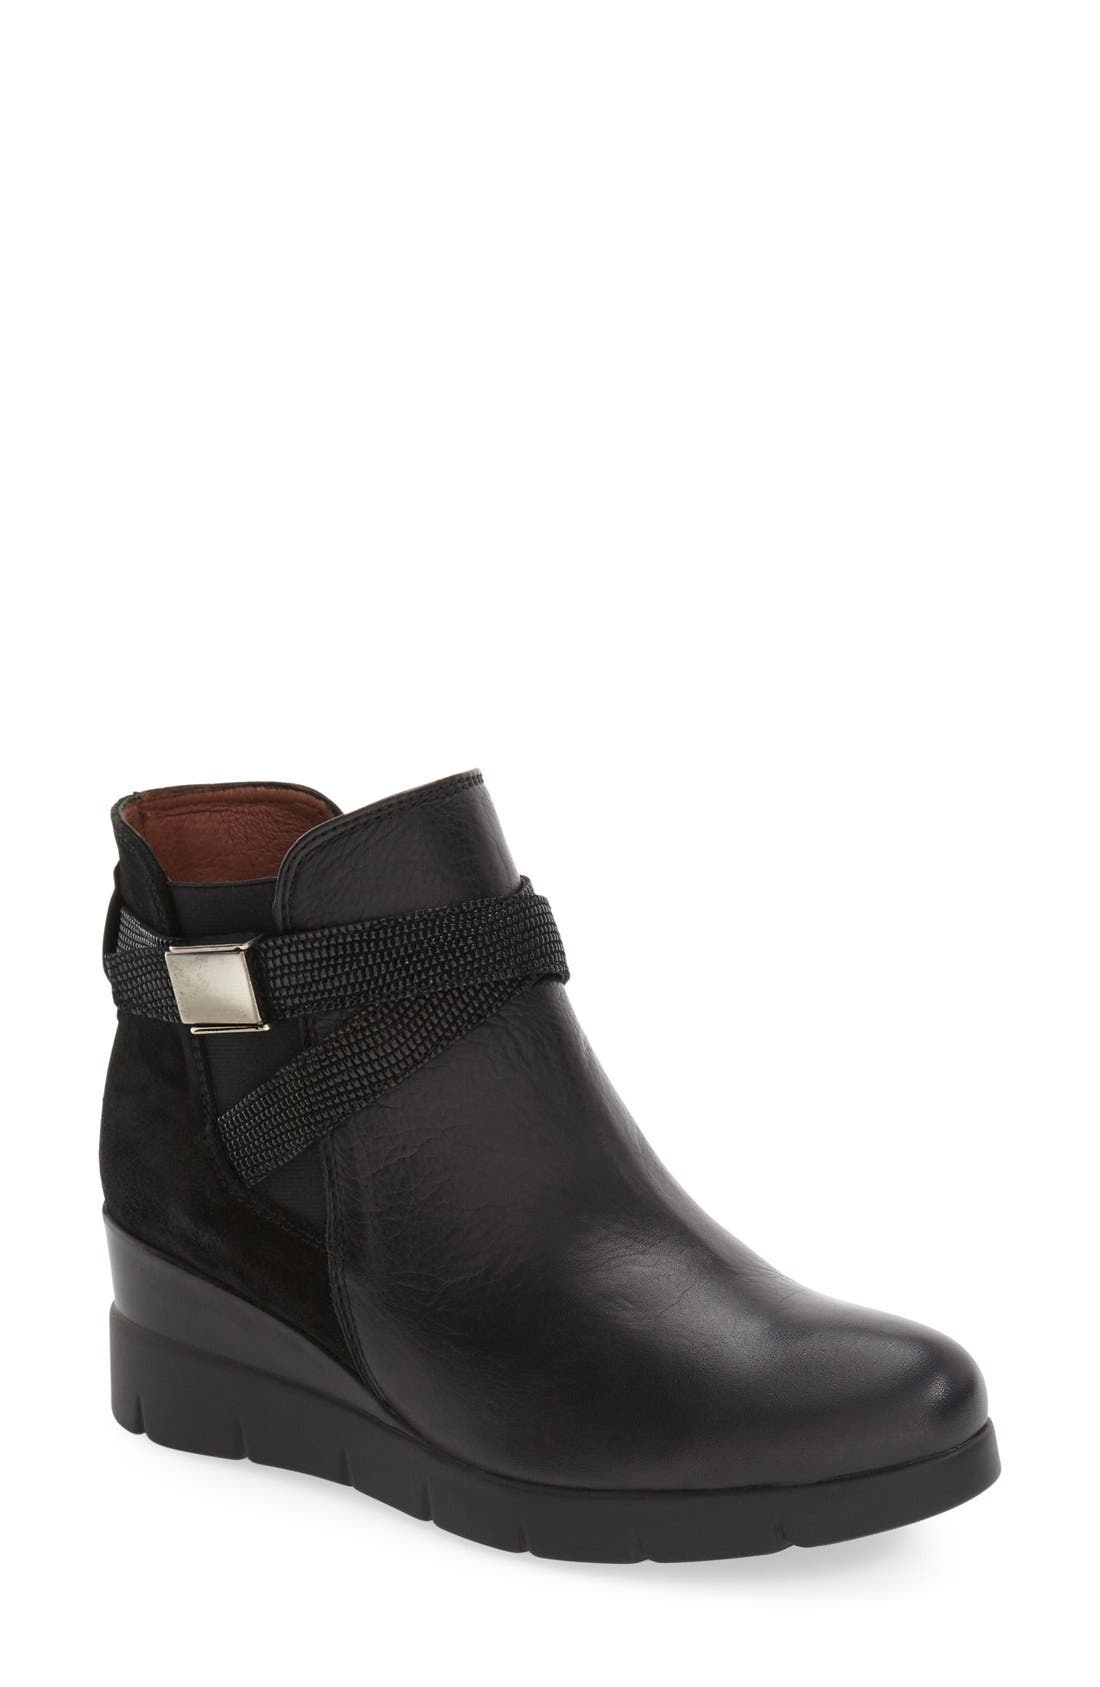 'Larae' Wedge Bootie,                         Main,                         color, Soho Black Leather